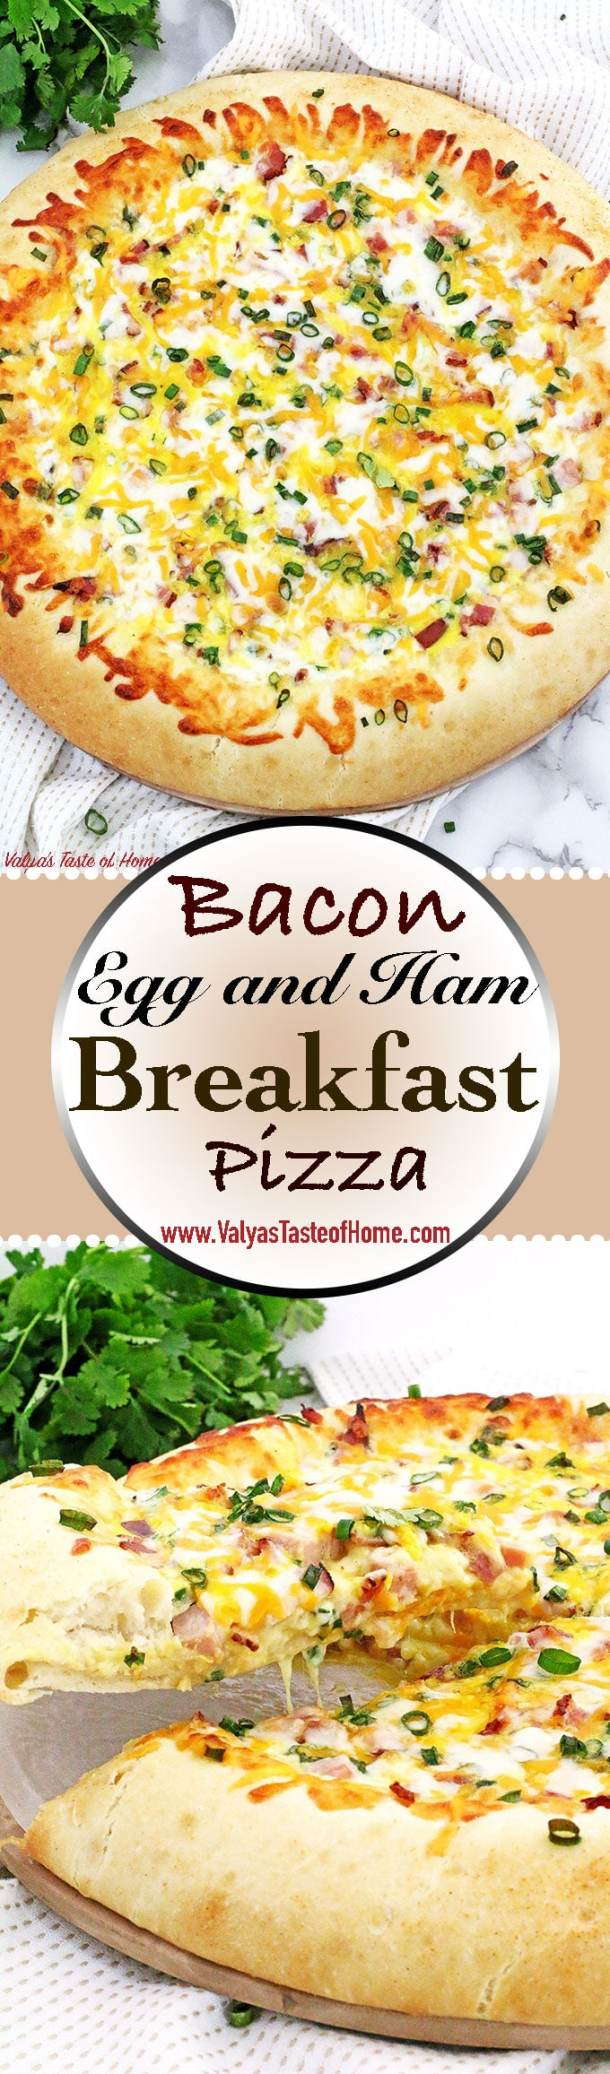 Not much can beat the taste of Bacon, Egg, and Ham Breakfast Pizza Recipe made from scratch for breakfast at my house! Soft homemade pizza dough topped with your favorite breakfast ingredients make it taste so good. Kids will look forward to waking up early knowing what's on the menu, to enjoy the scrumptious slice of the cheese breakfast pizza.